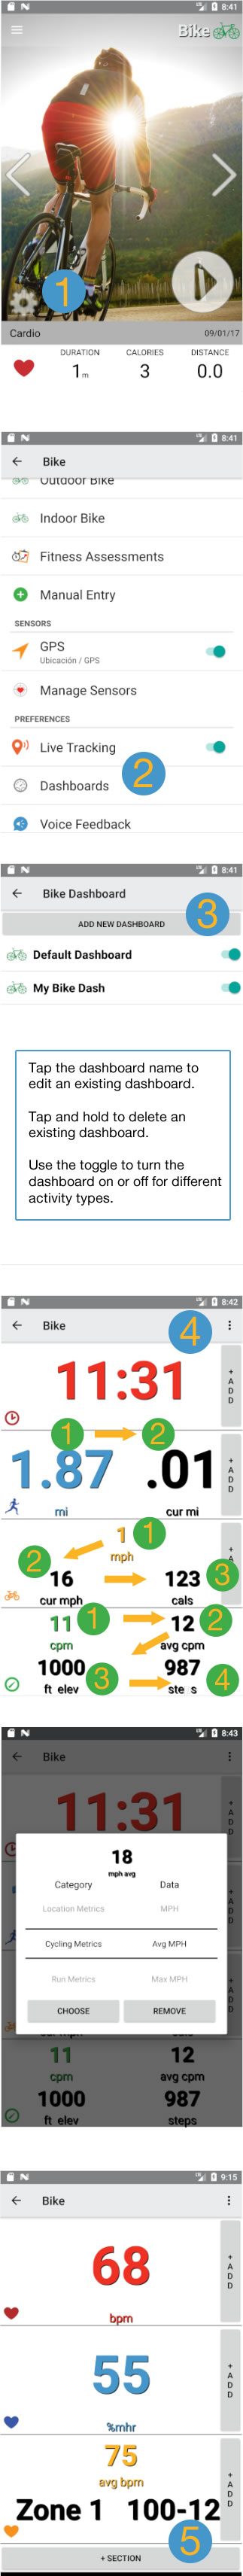 Customize Dashboards on Android